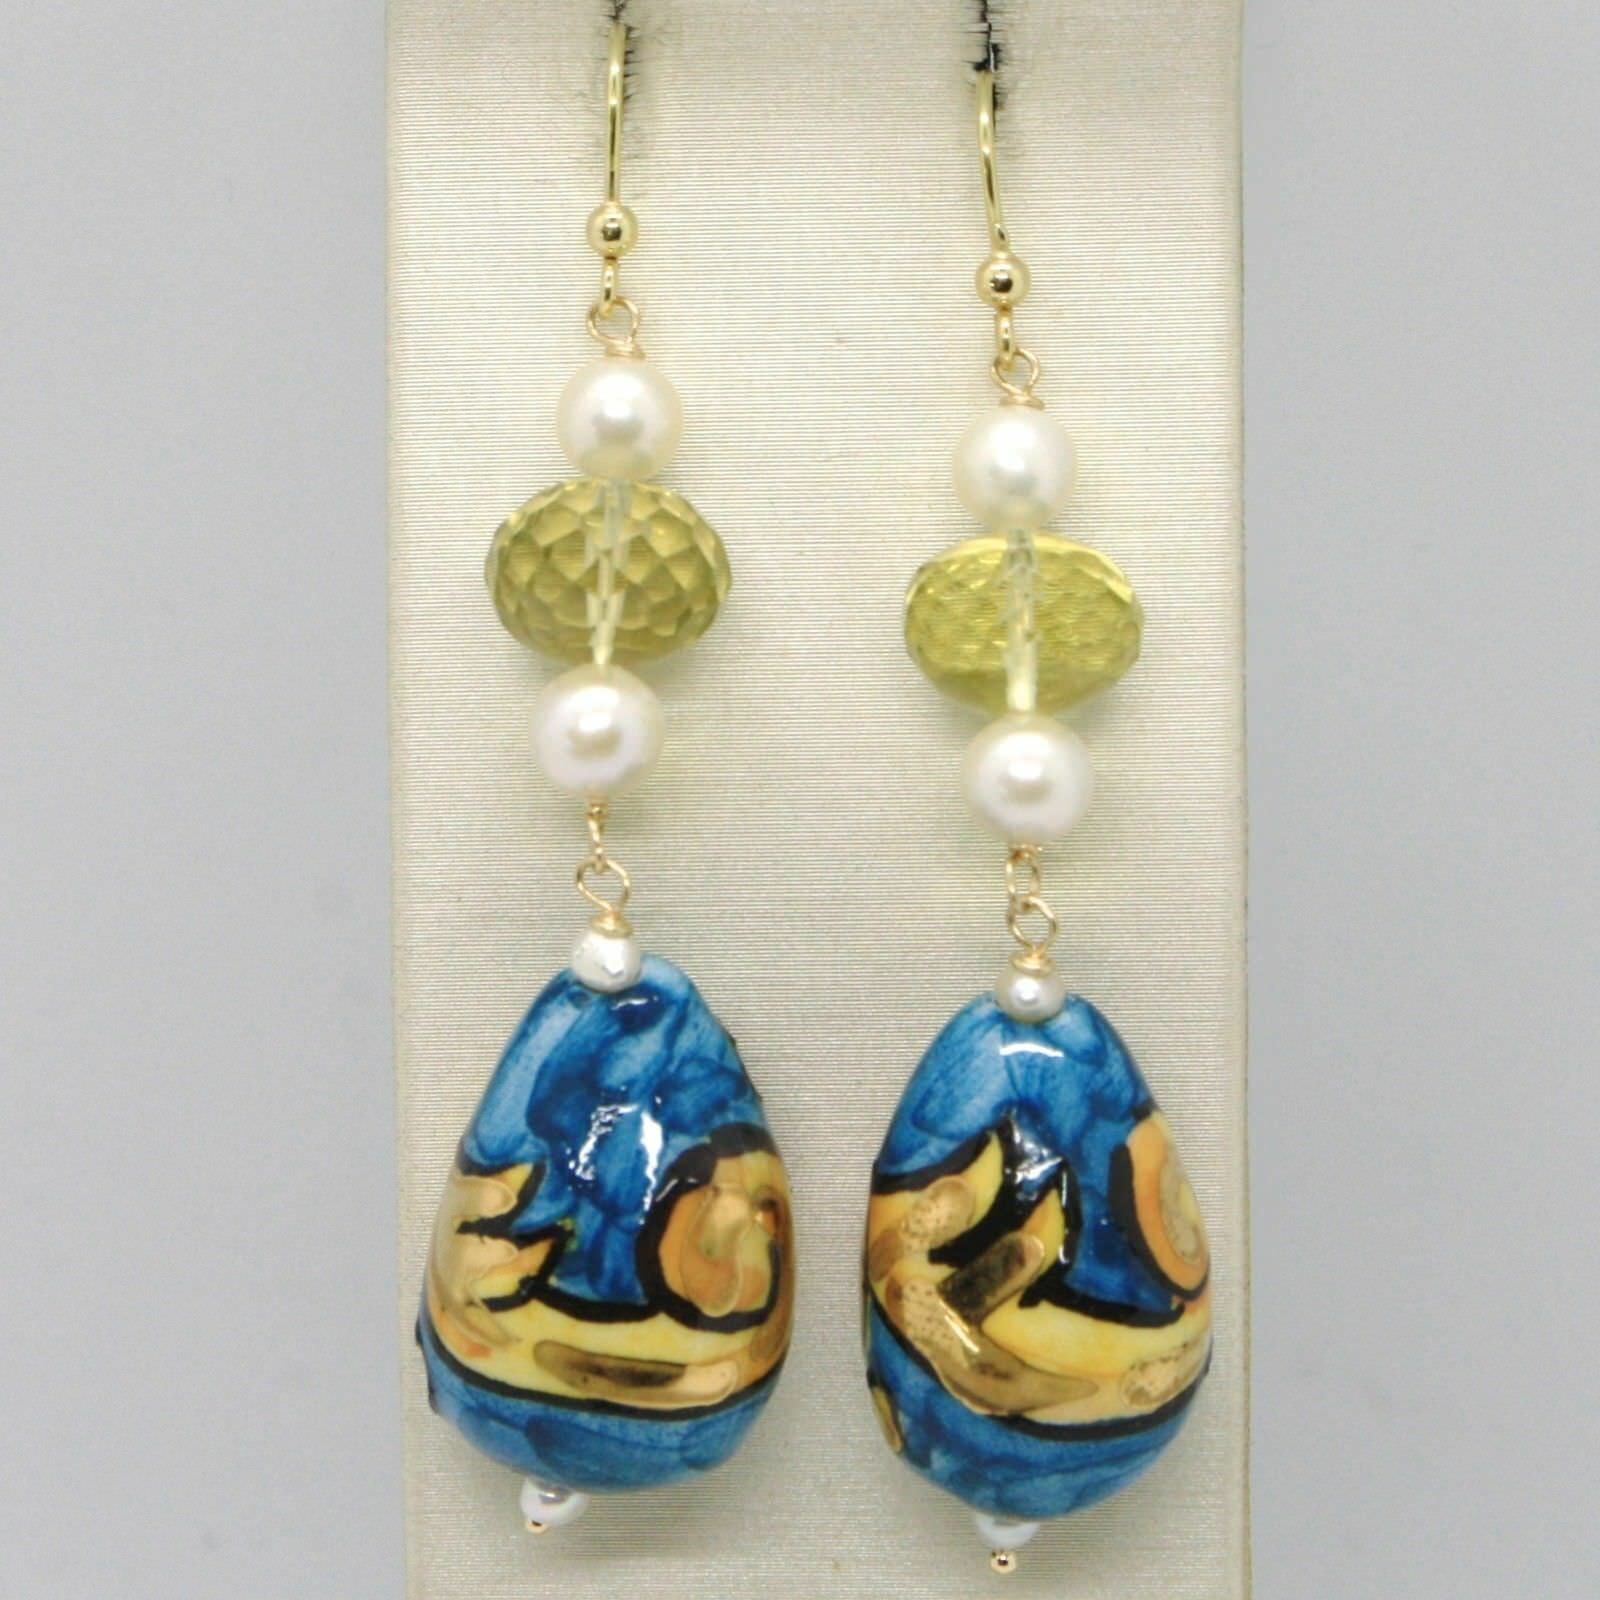 Yellow Gold Earrings 750 18K Pearls and a Drop Painted by hand Made in Italy